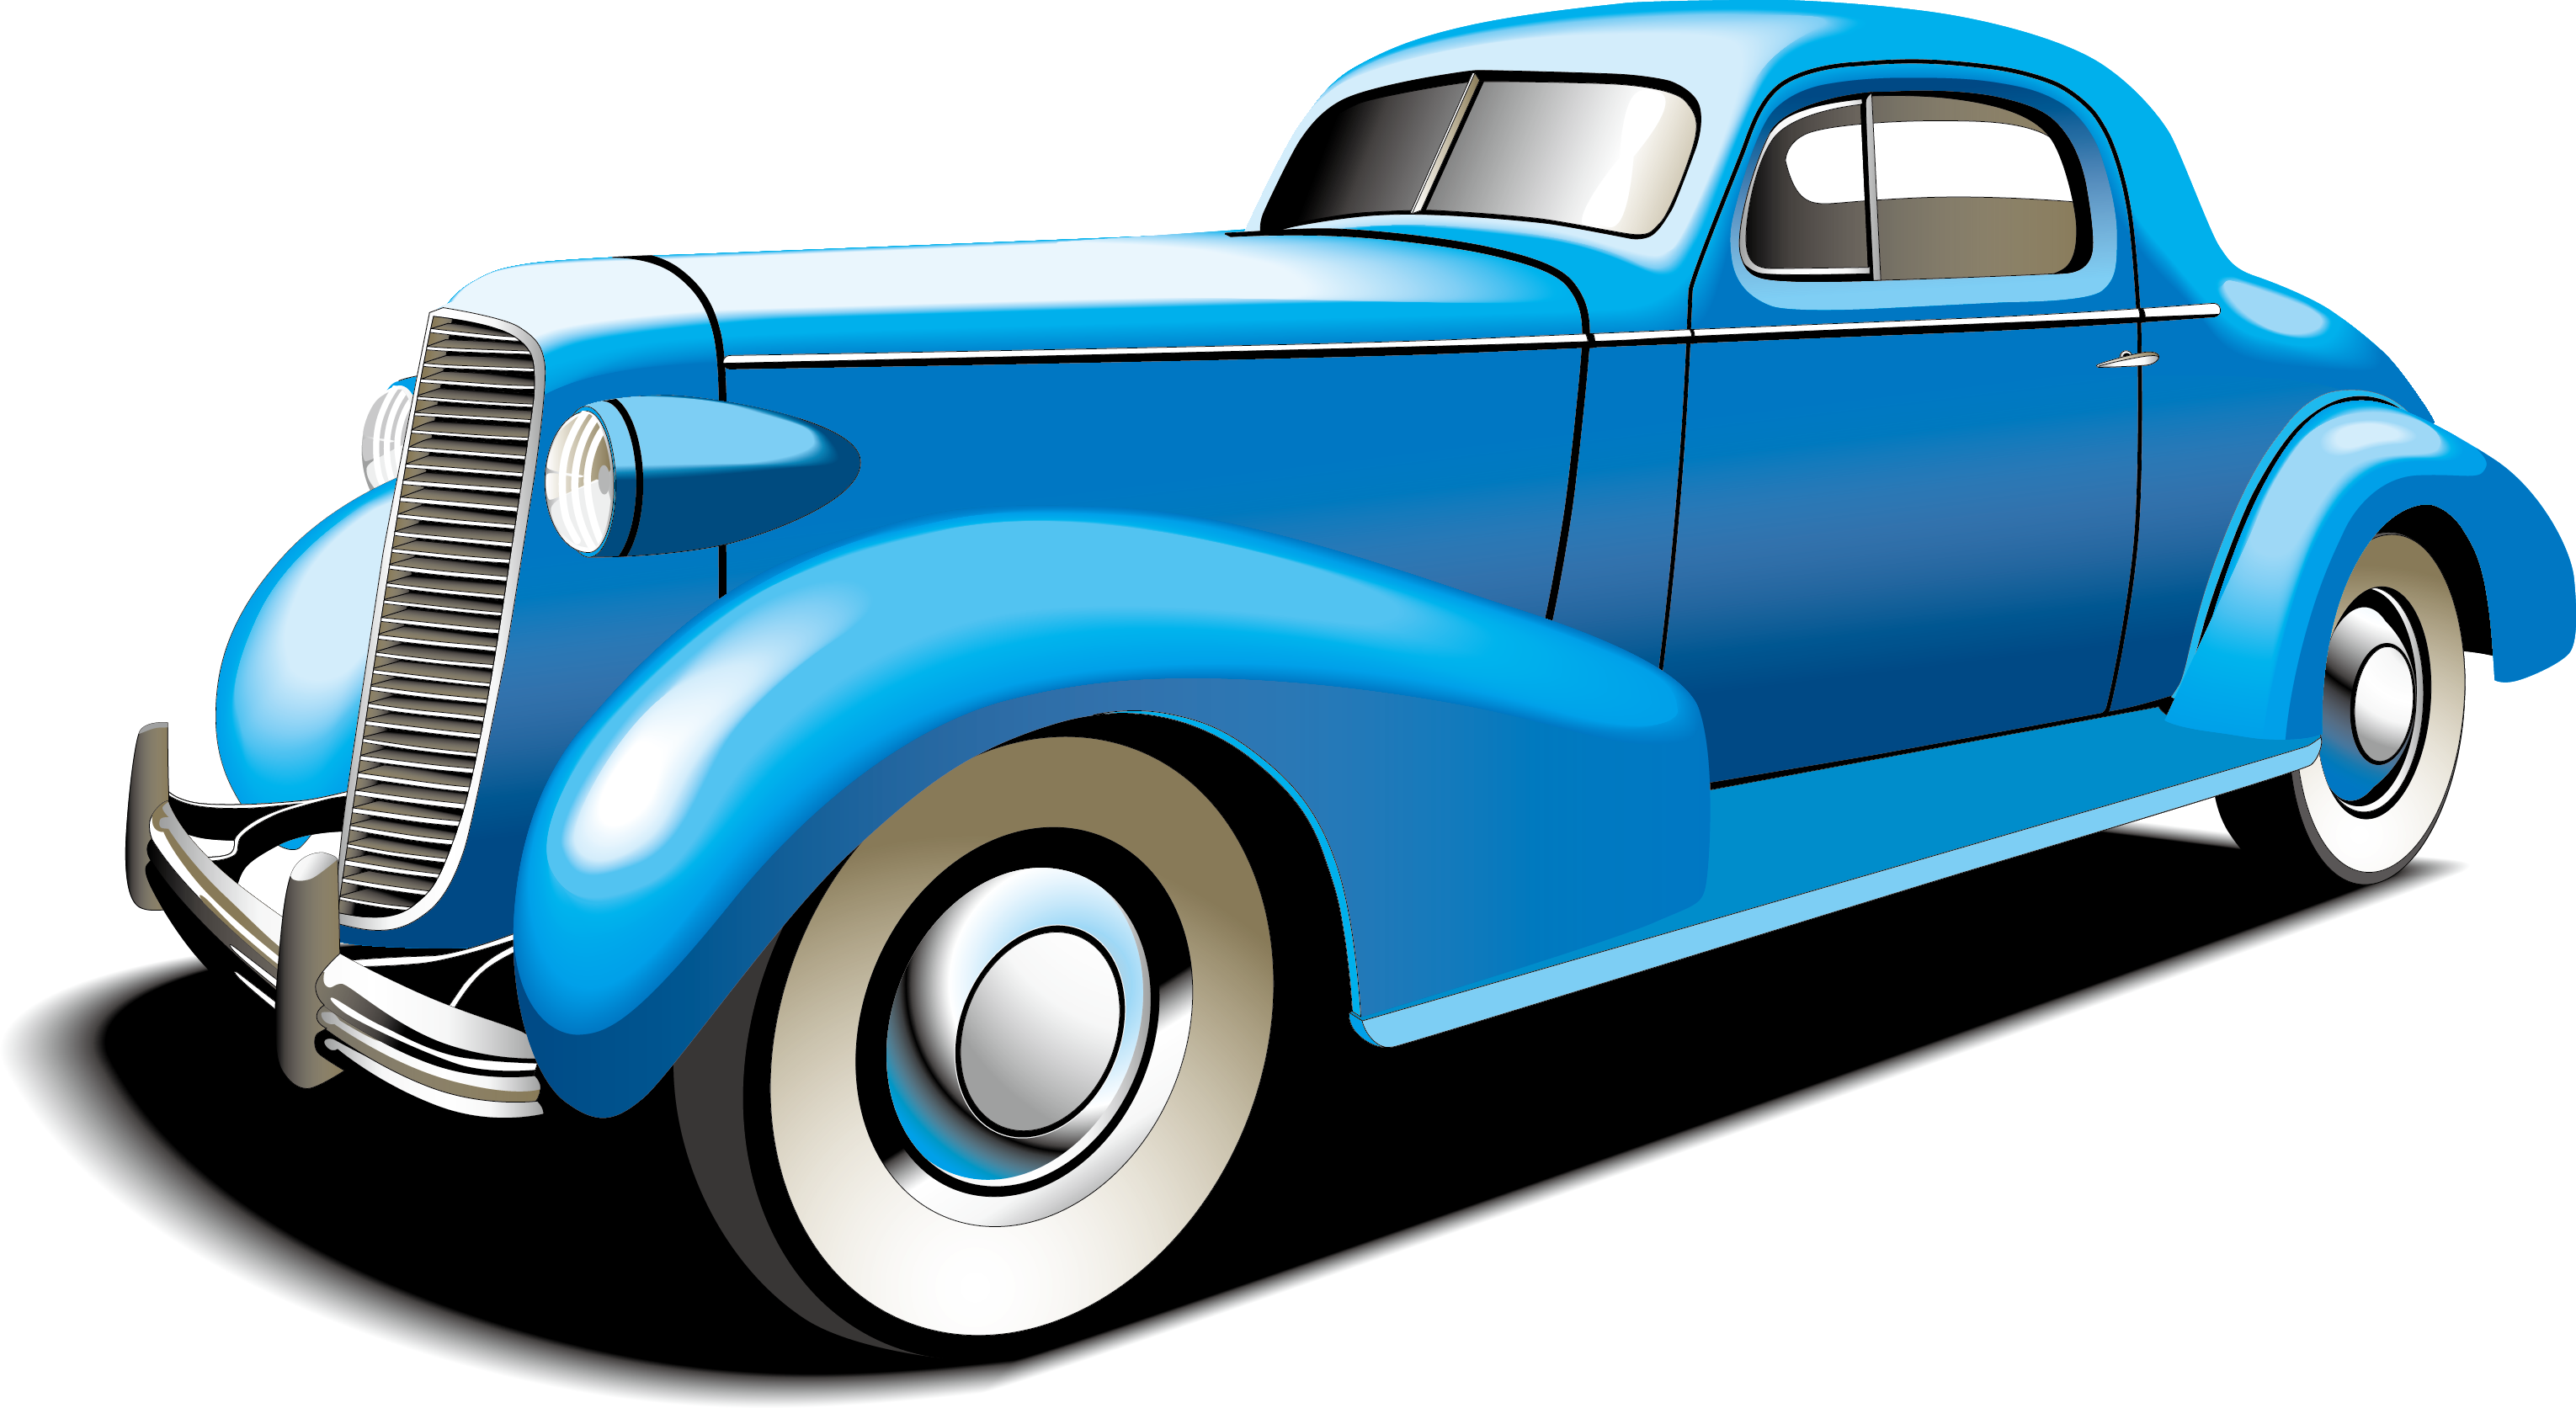 Old fashioned car clipart picture library download Classic car Vintage car Antique car Clip art - Classic classic car ... picture library download